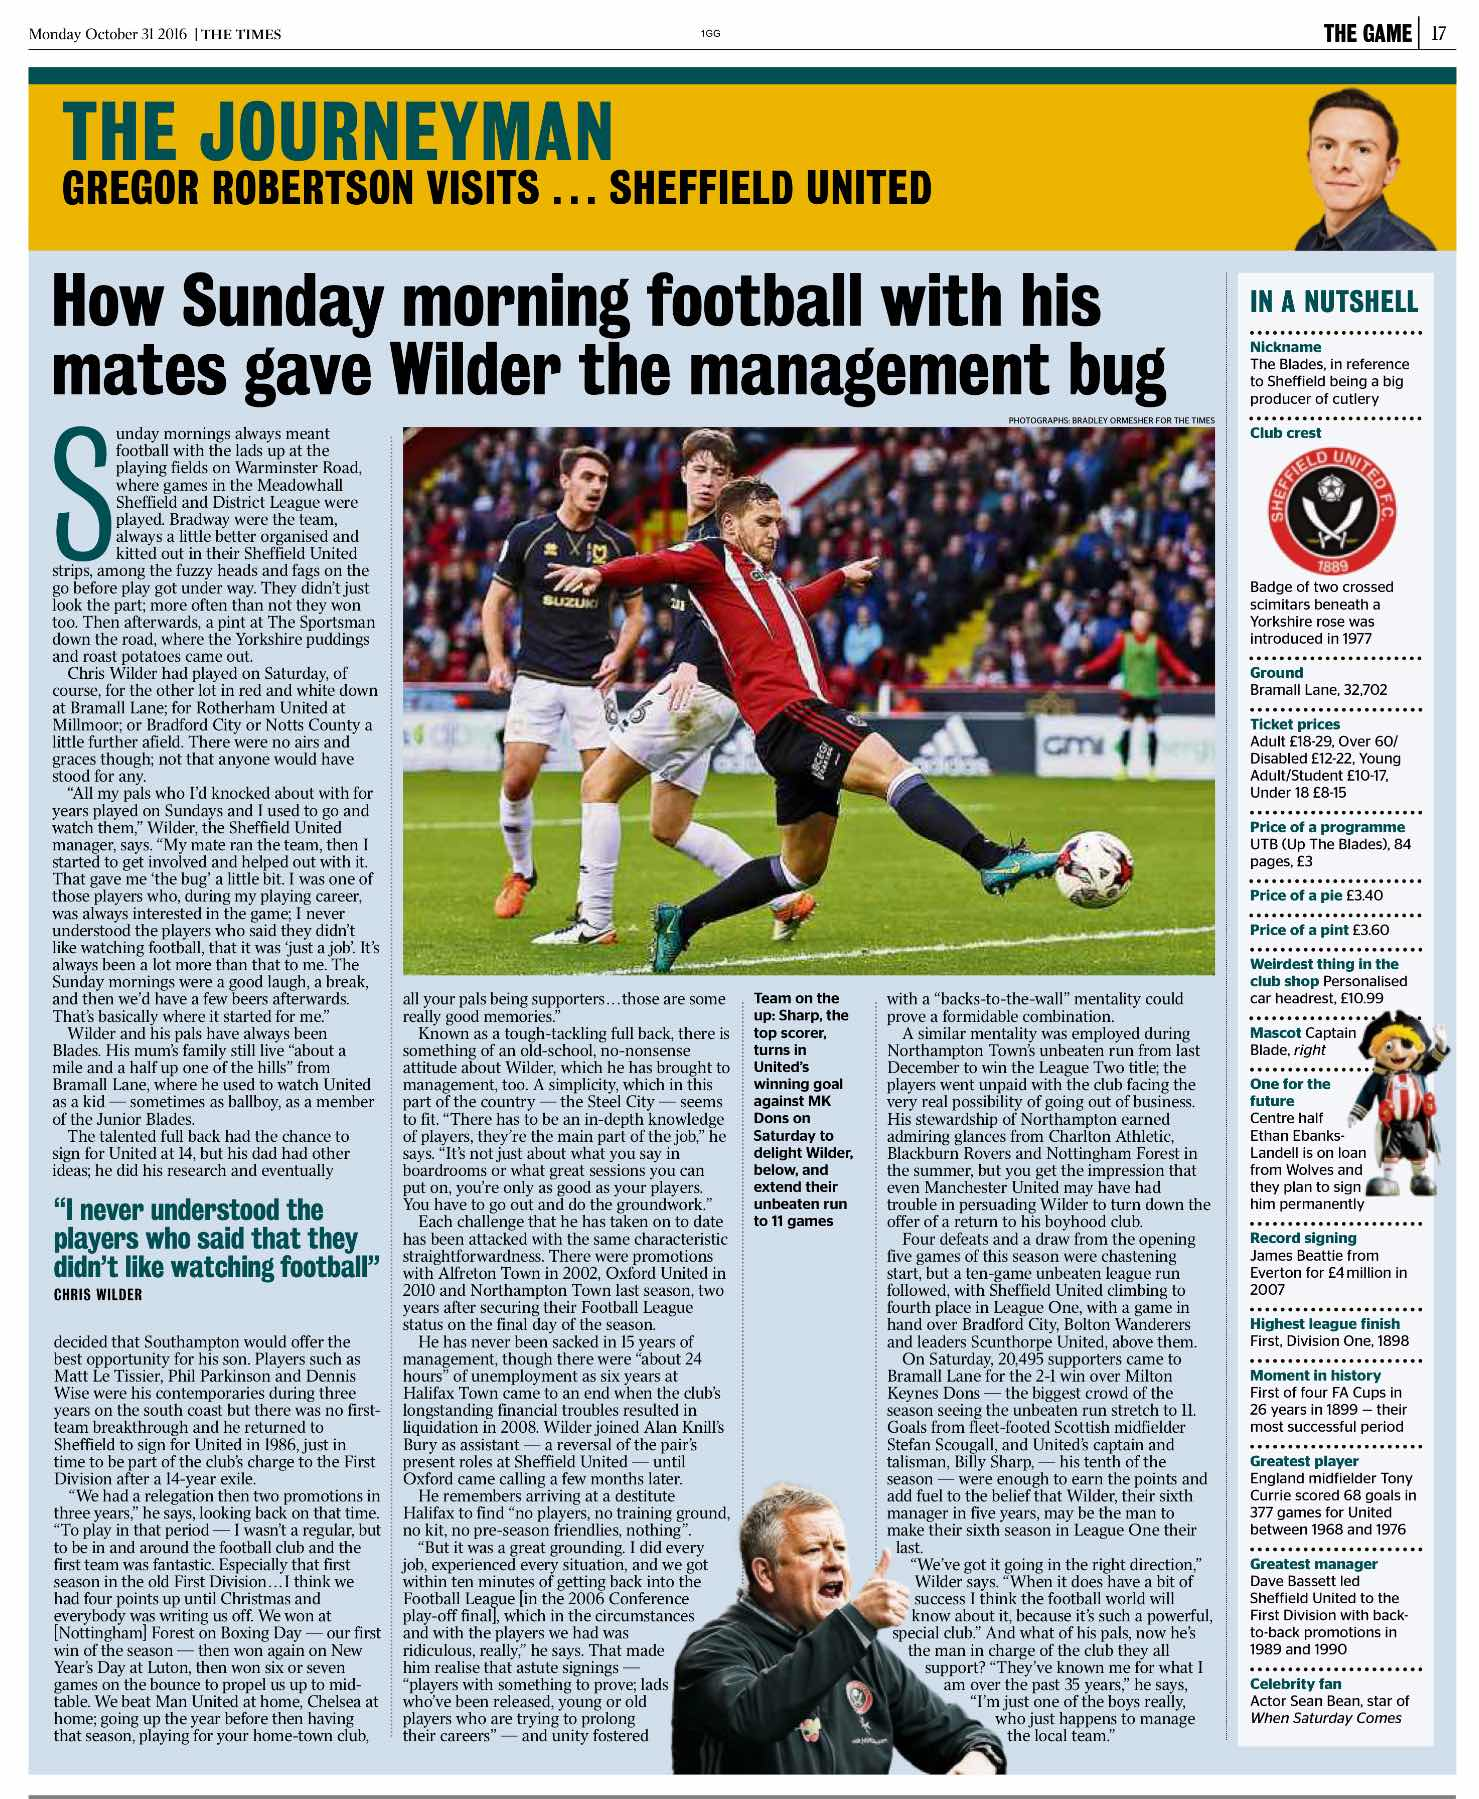 The Times on Sheffield United boss Chris Wilder